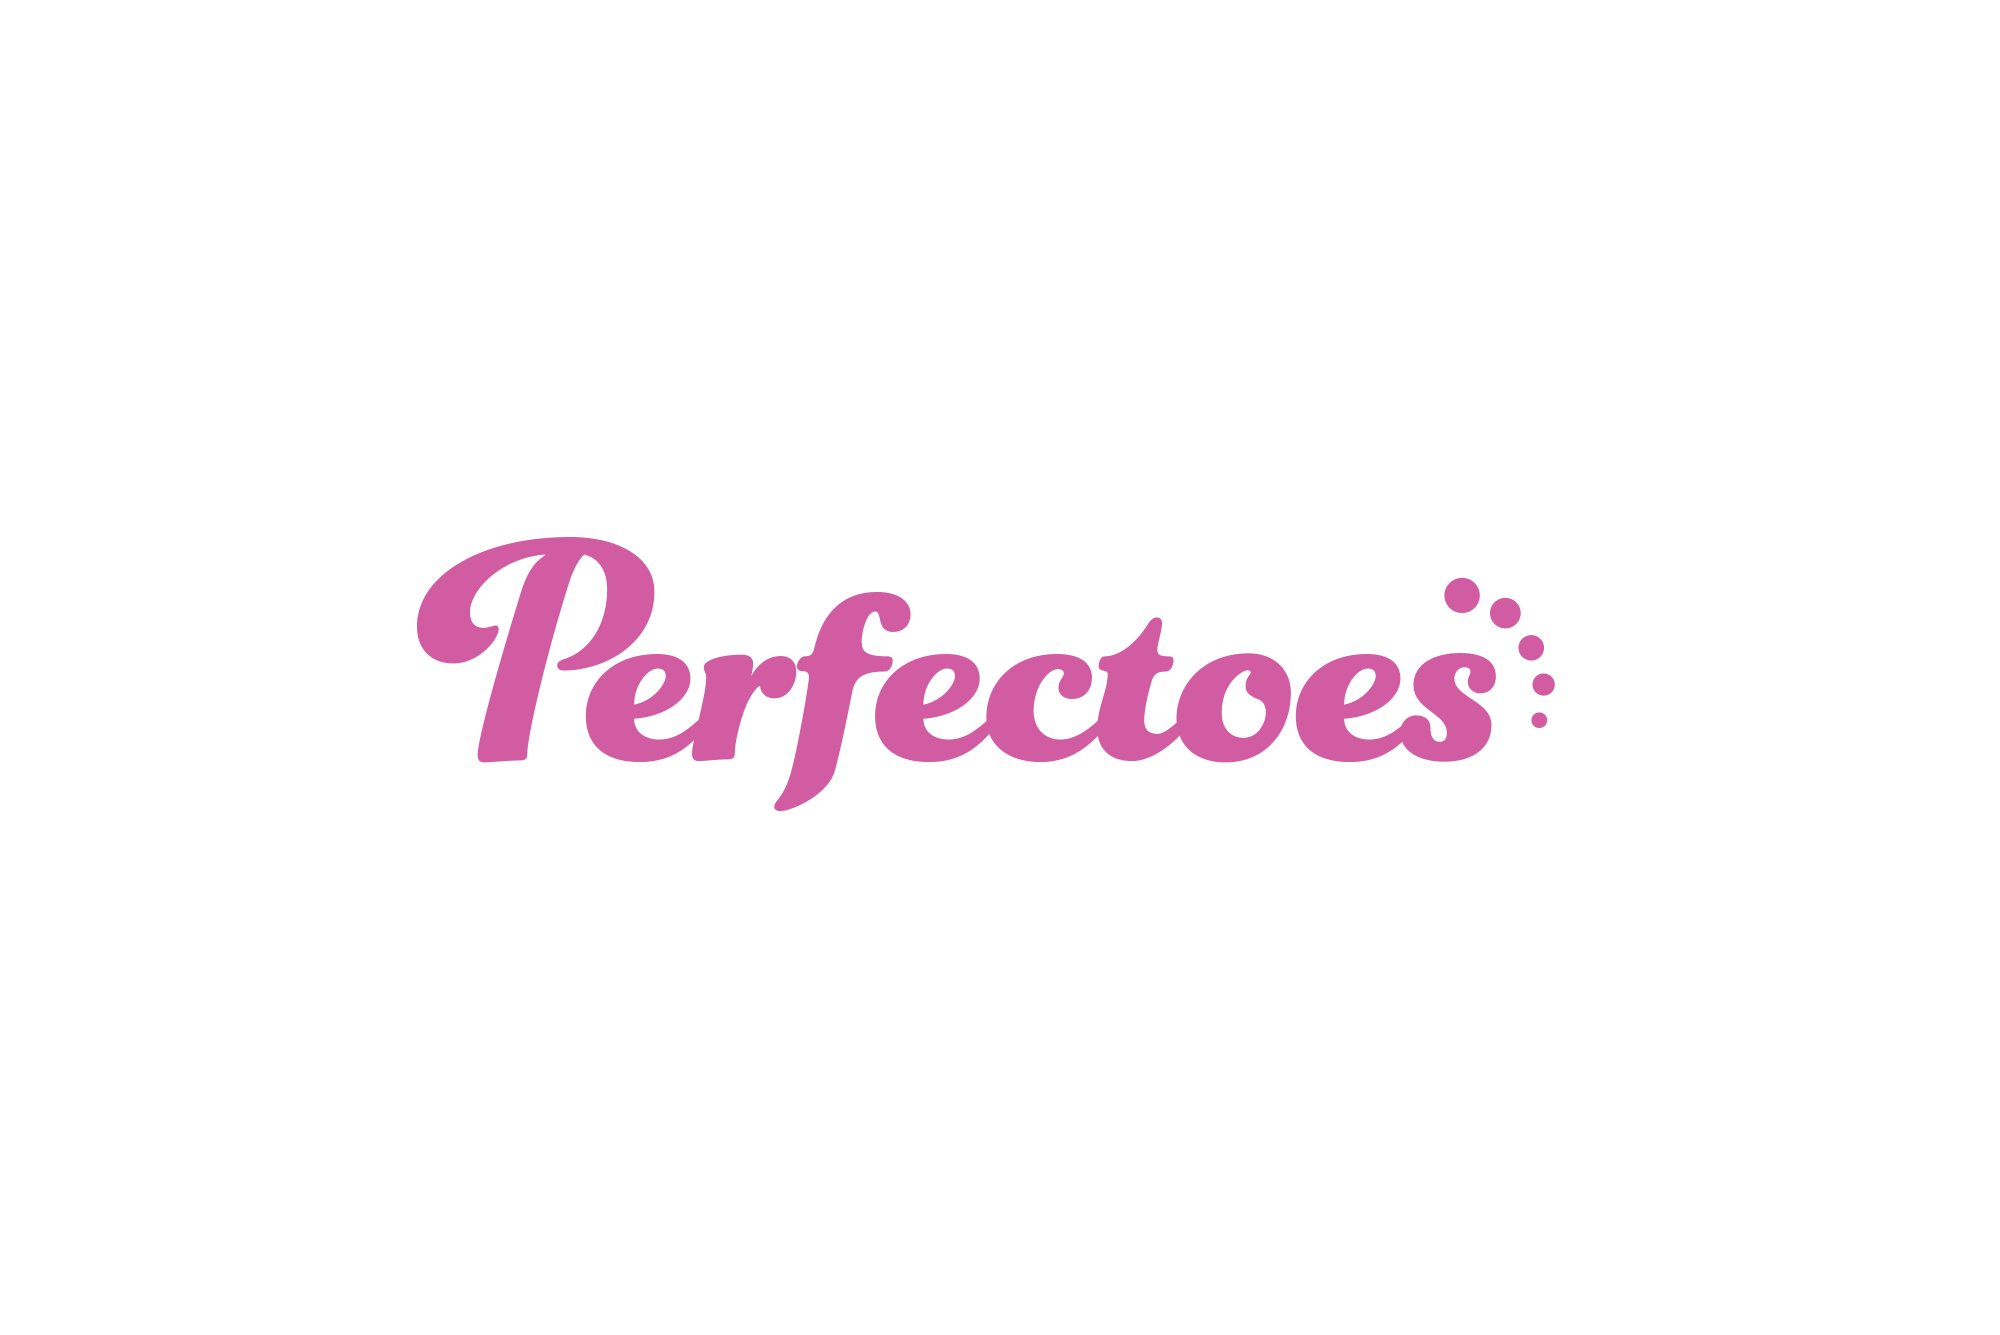 http://dubaipodiatry.com/wp-content/uploads/2015/12/DPC_logos_perfectoes.png